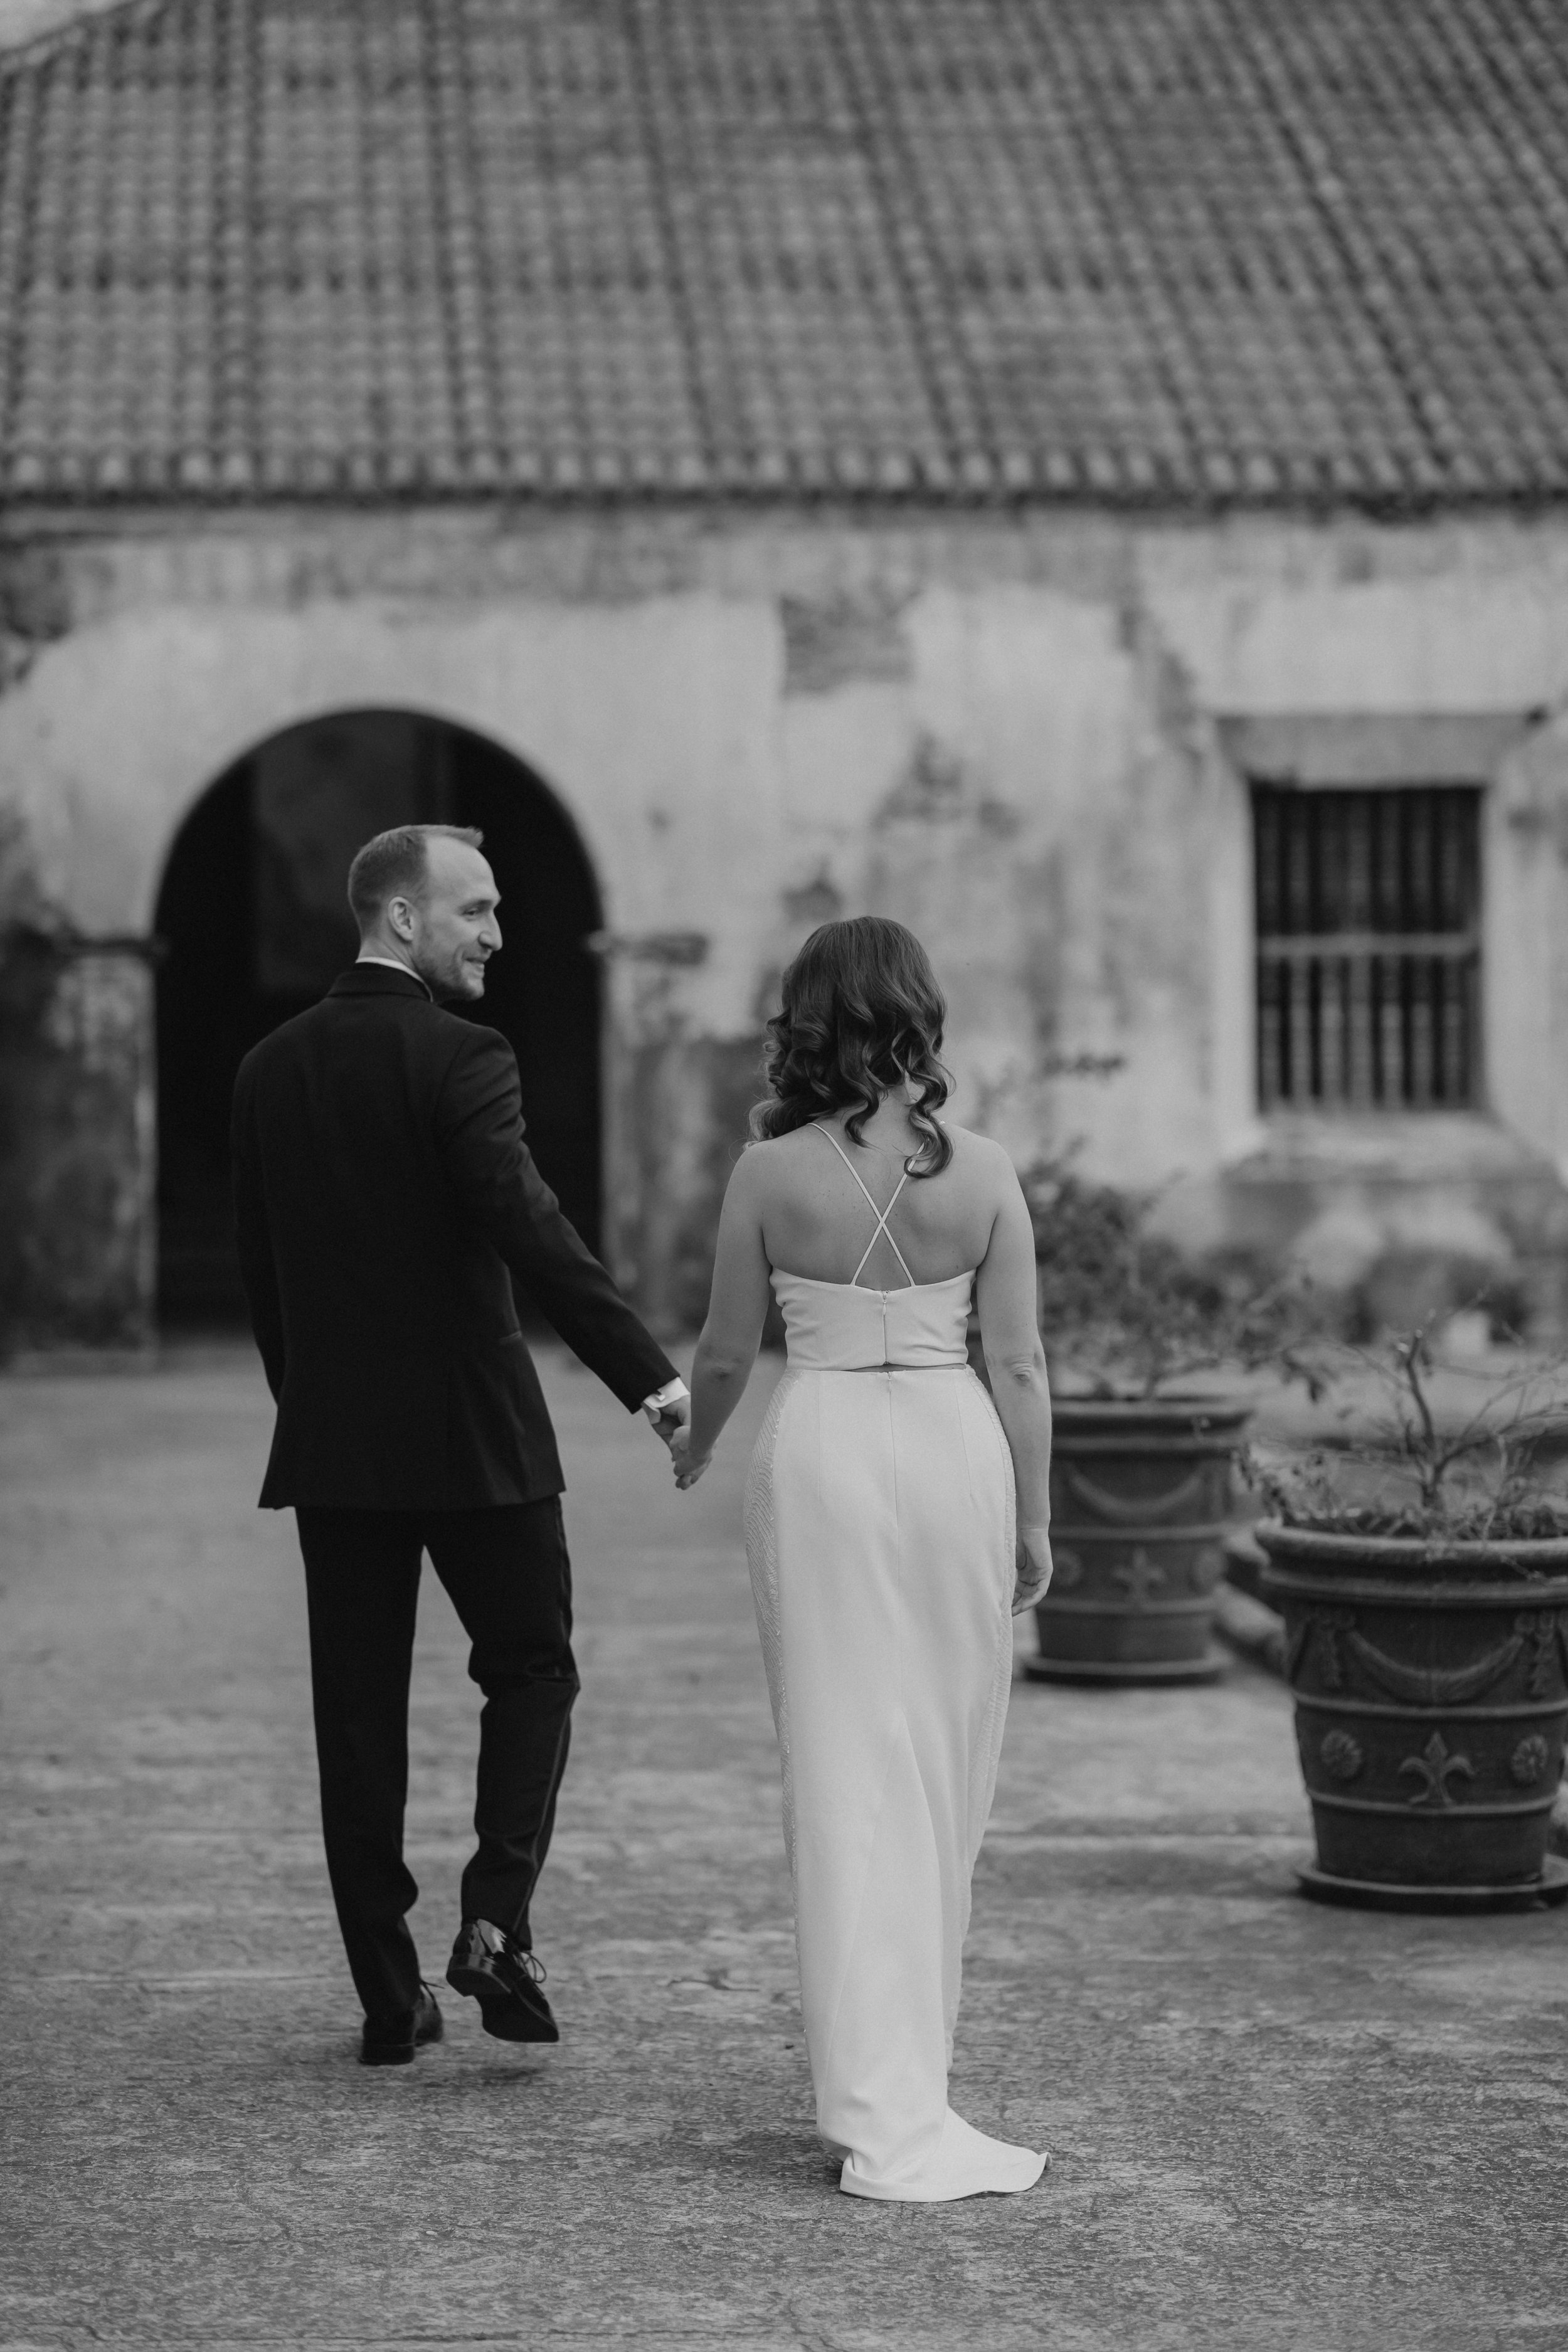 Mac leads Kathe through one of the best wedding venues in Antigua Guatemala.